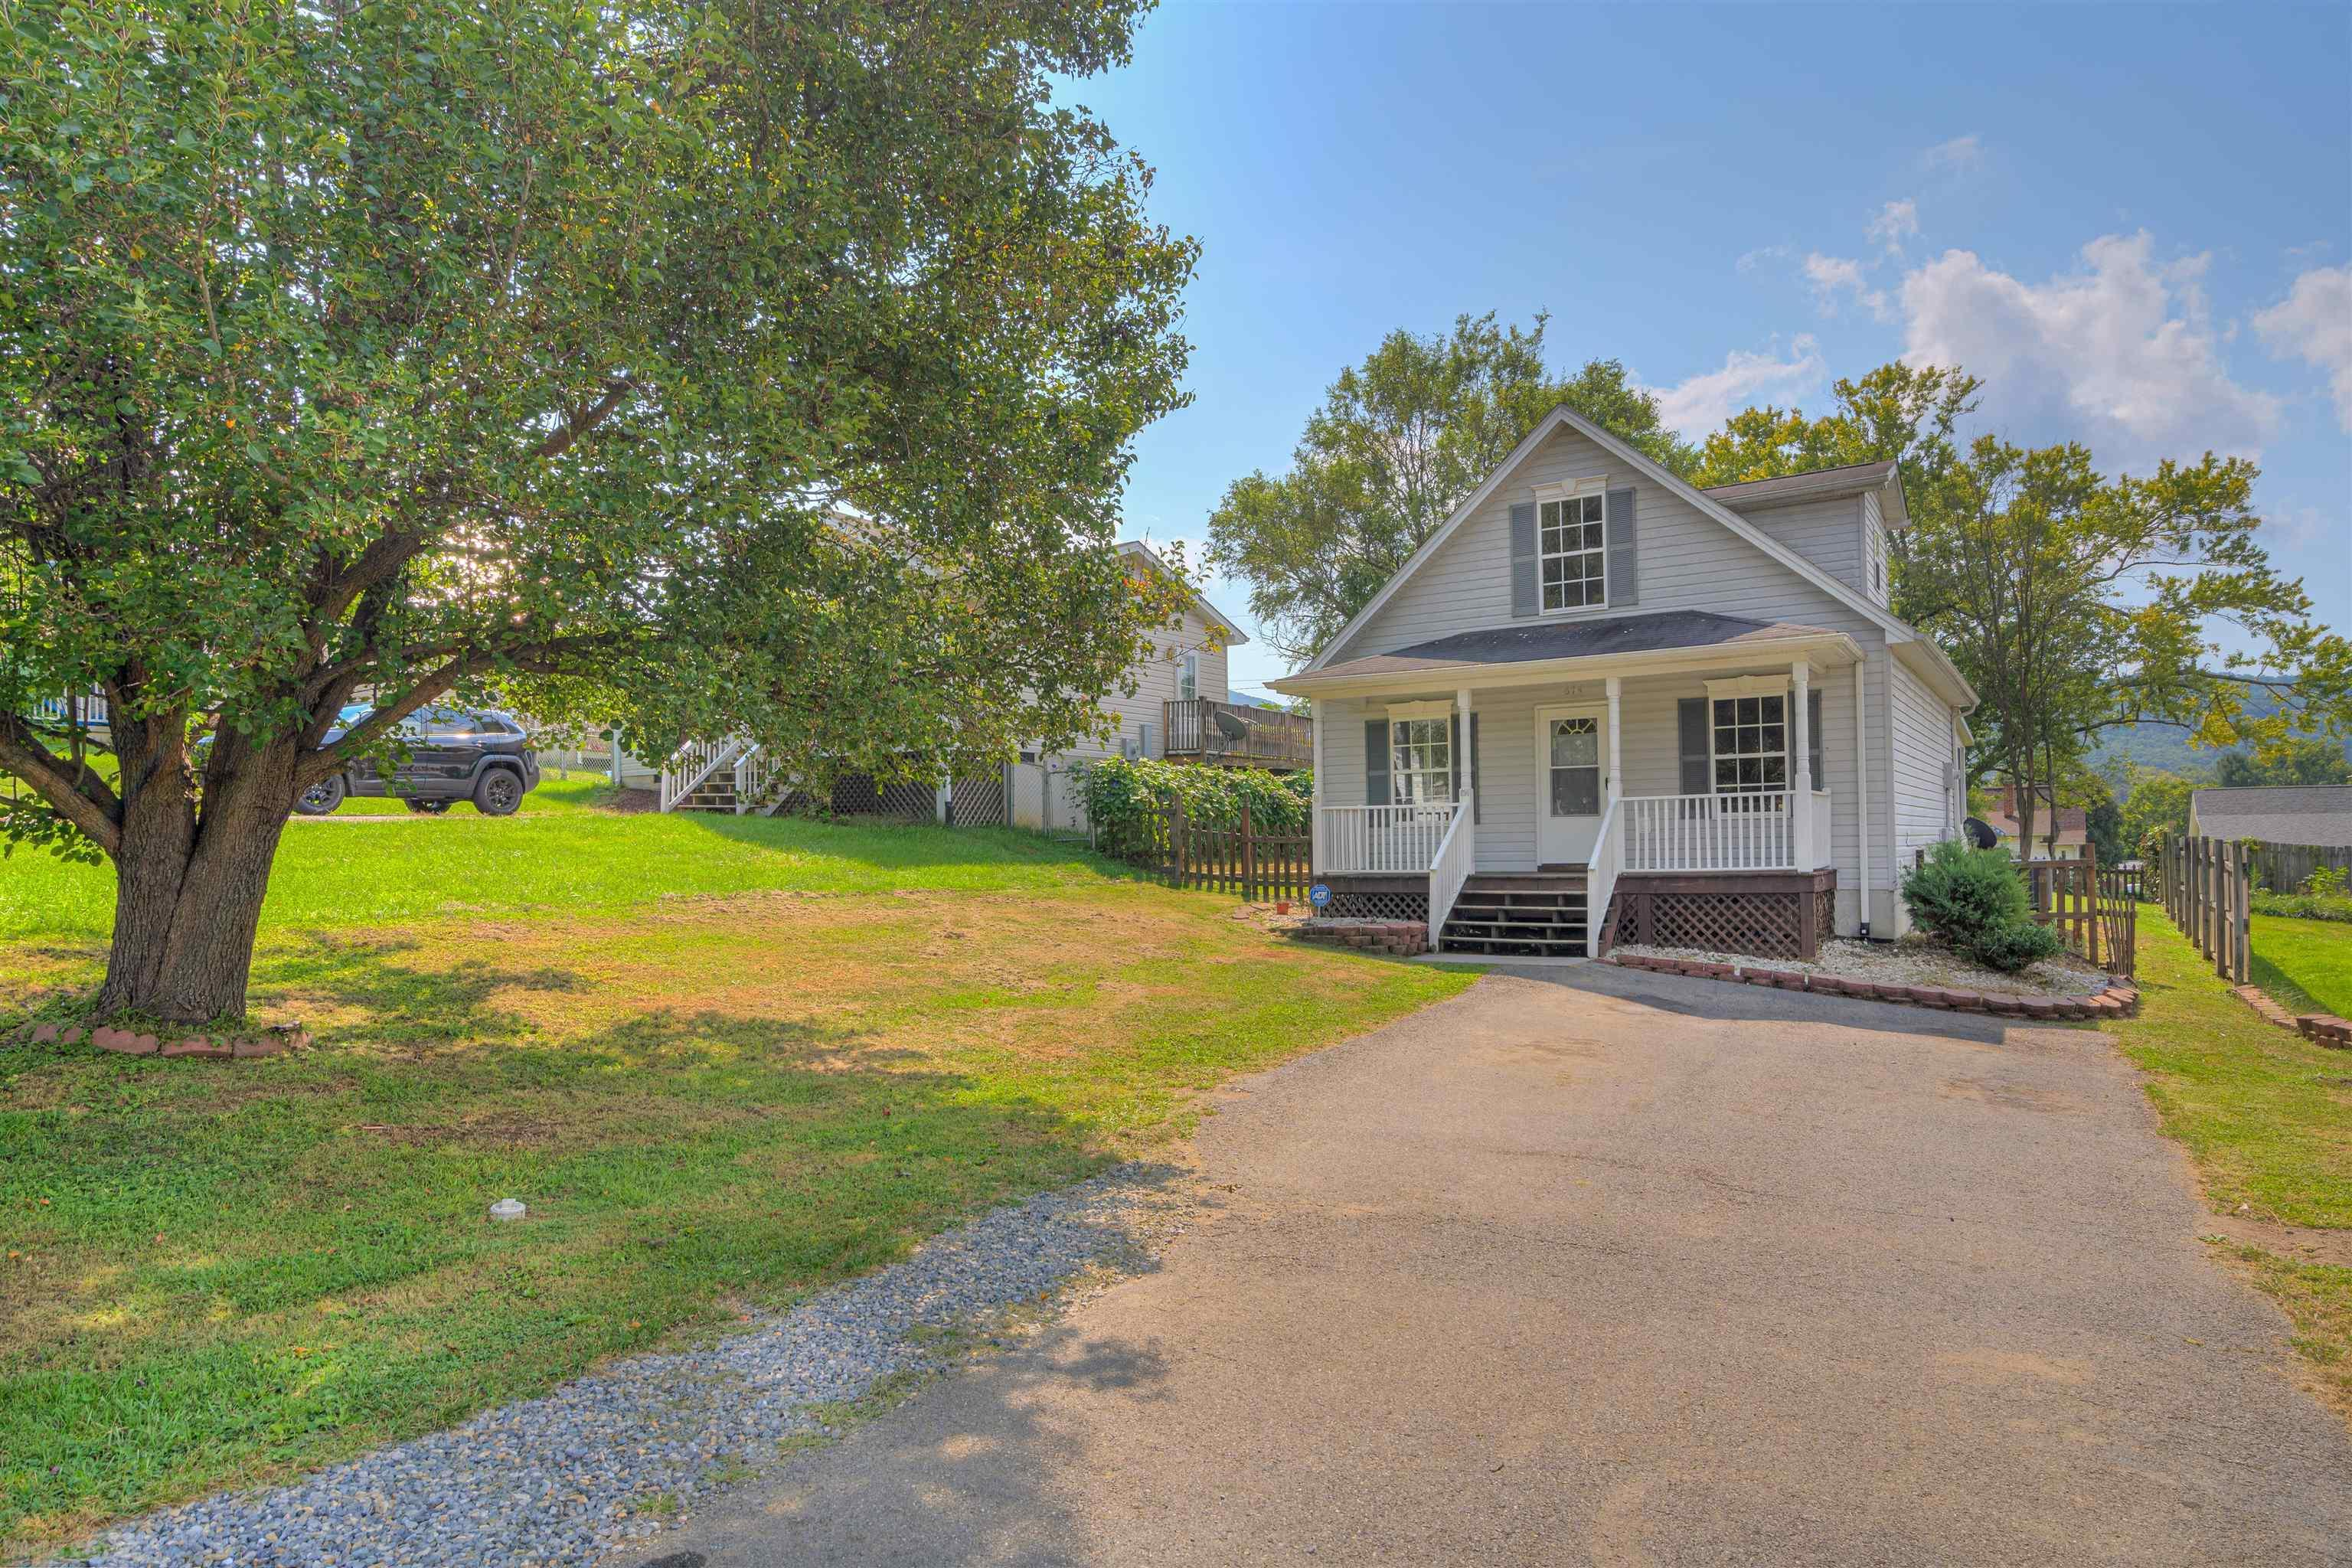 This cute traditional Cape Cod style home sits on a sweet piece of property right in the heart of Pulaski. Large paved drive for extra parking! Mature trees. Enter via the large covered front porch, perfect for summer evenings!  Spacious living/dining room, right off the galley style kitchen with lots of cabinets, windows for natural light, and easy access to the laundry on the main. A full master bedroom with full private bath is right around the corner. Walkout to the sunroom! Upstairs you will find two spacious bedrooms and another full bath. The backyard is fully fenced, and there is a large level patio right off of the sunroom. Garden space along the side of the home, and even a shed. Don't miss that mountain view, clear across the yard, and completely unobstructed. A great way to start or close out your day! Close to area shopping and schools, this won't last long. HVAC new in July 2021. Make your appointment today!